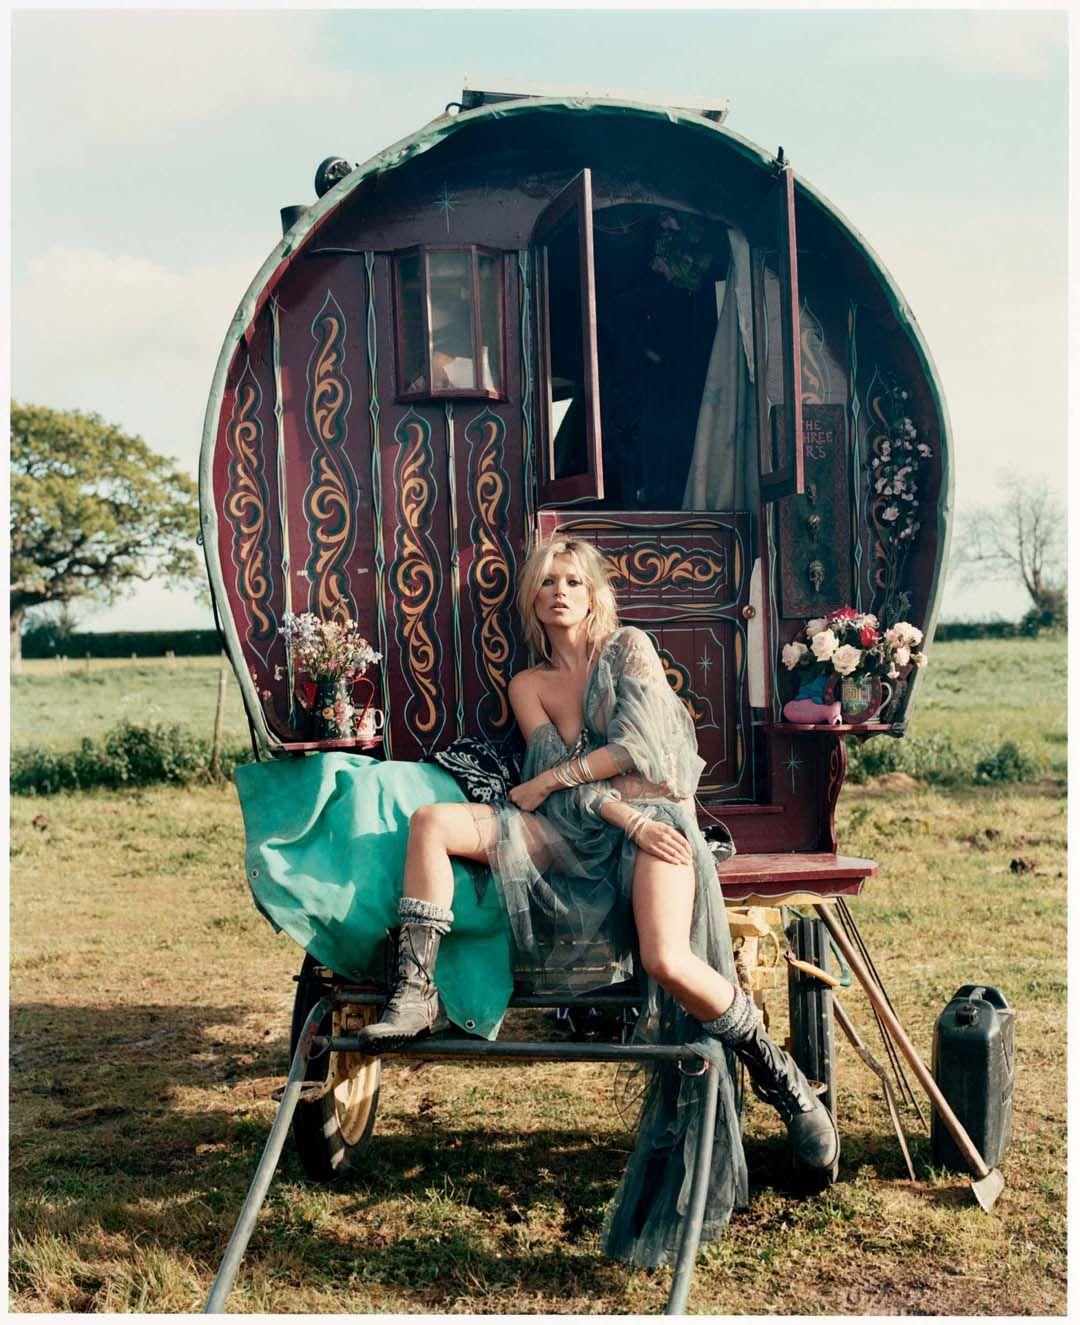 Kate Moss by Iain McKell